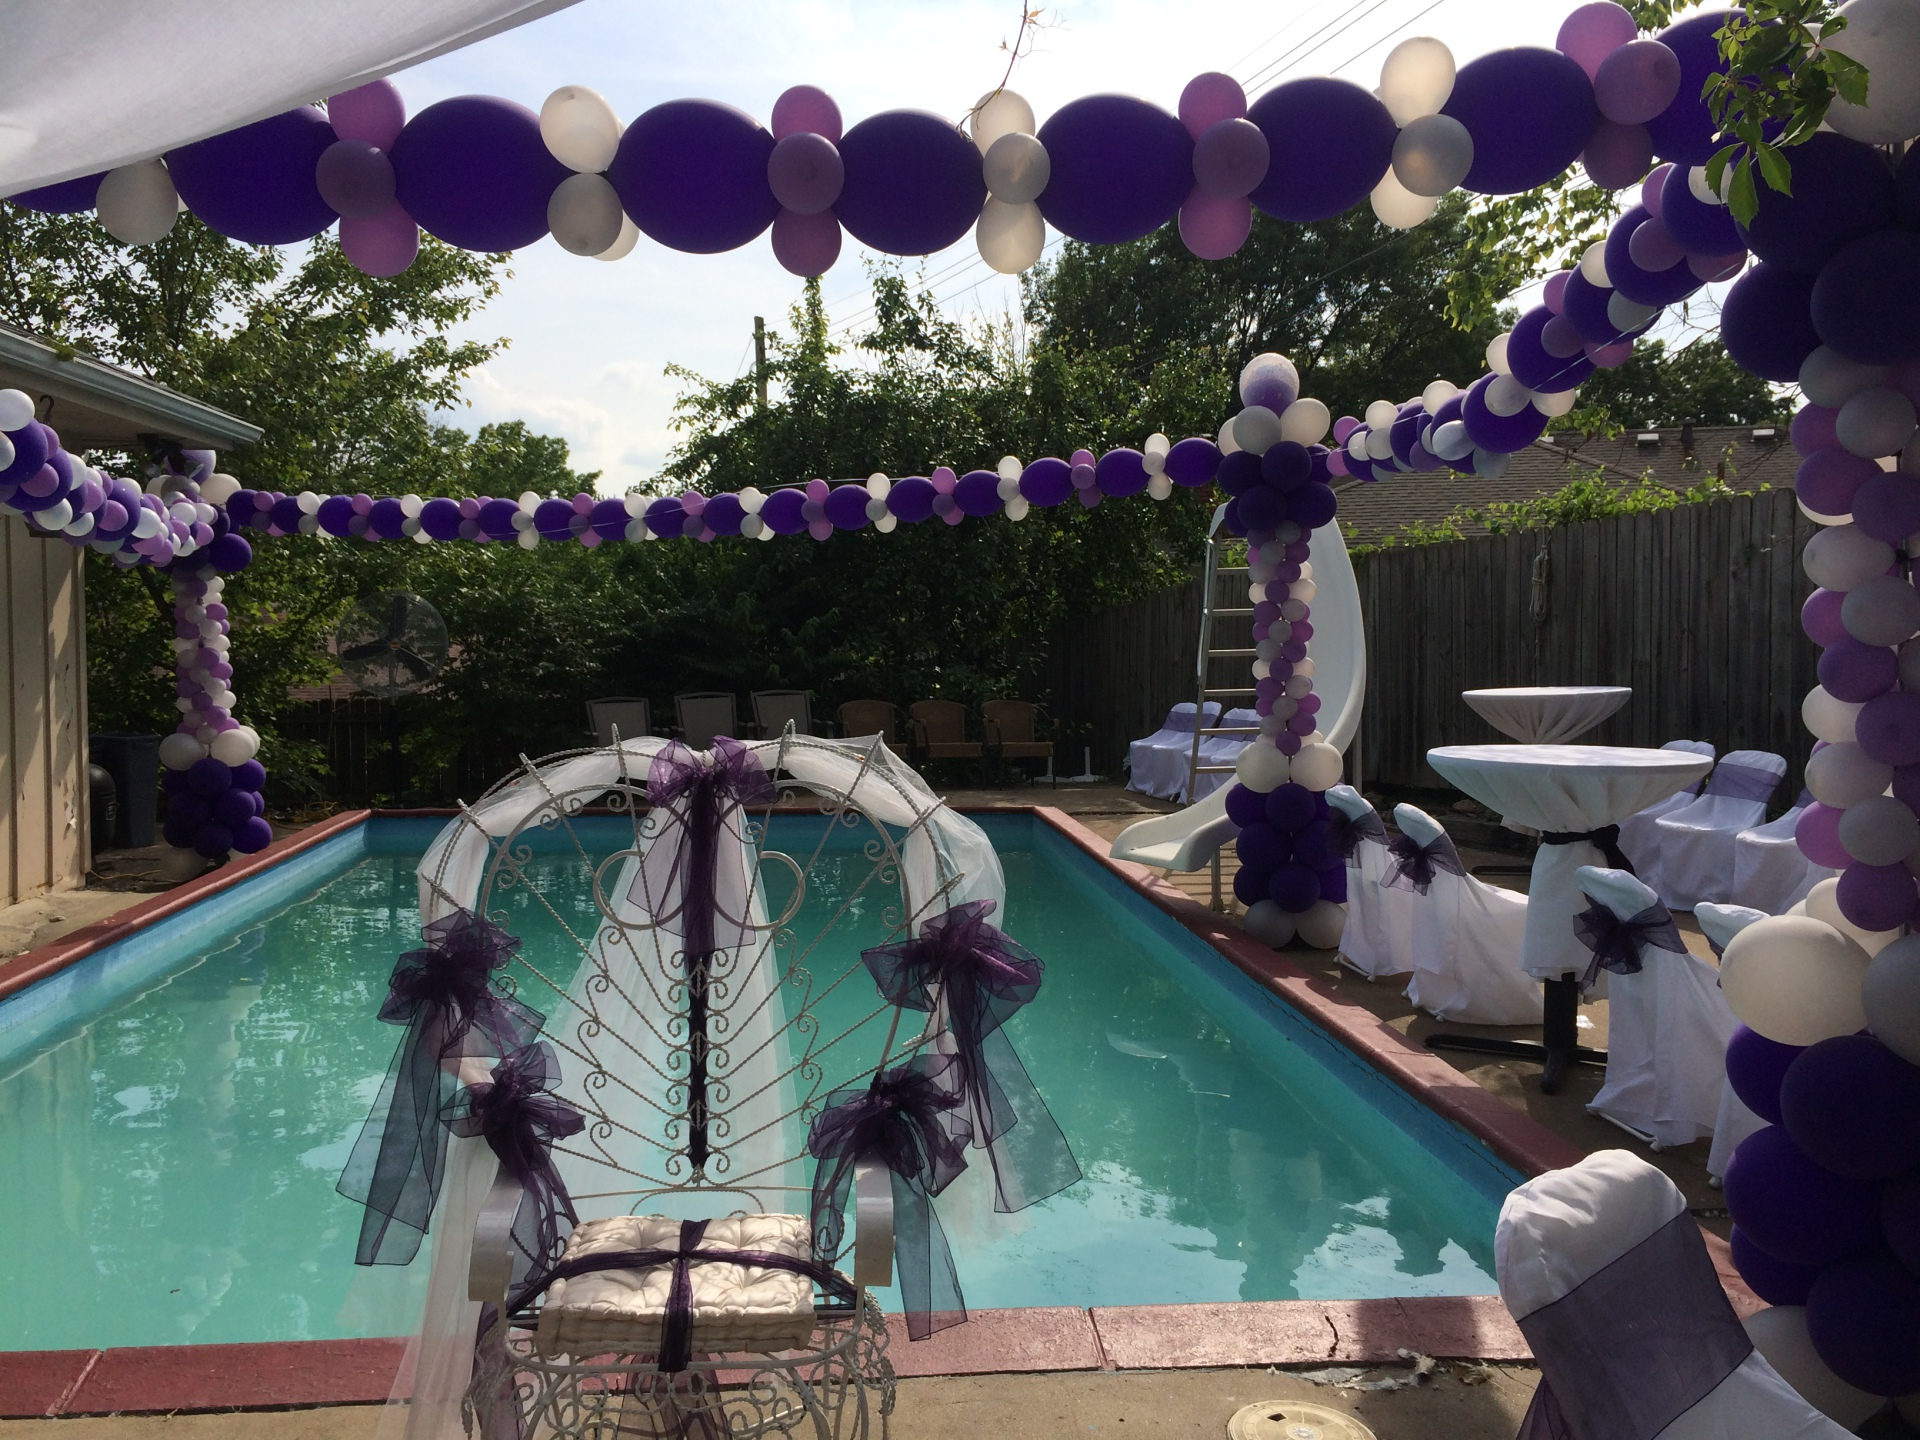 Pool Balloon Decor